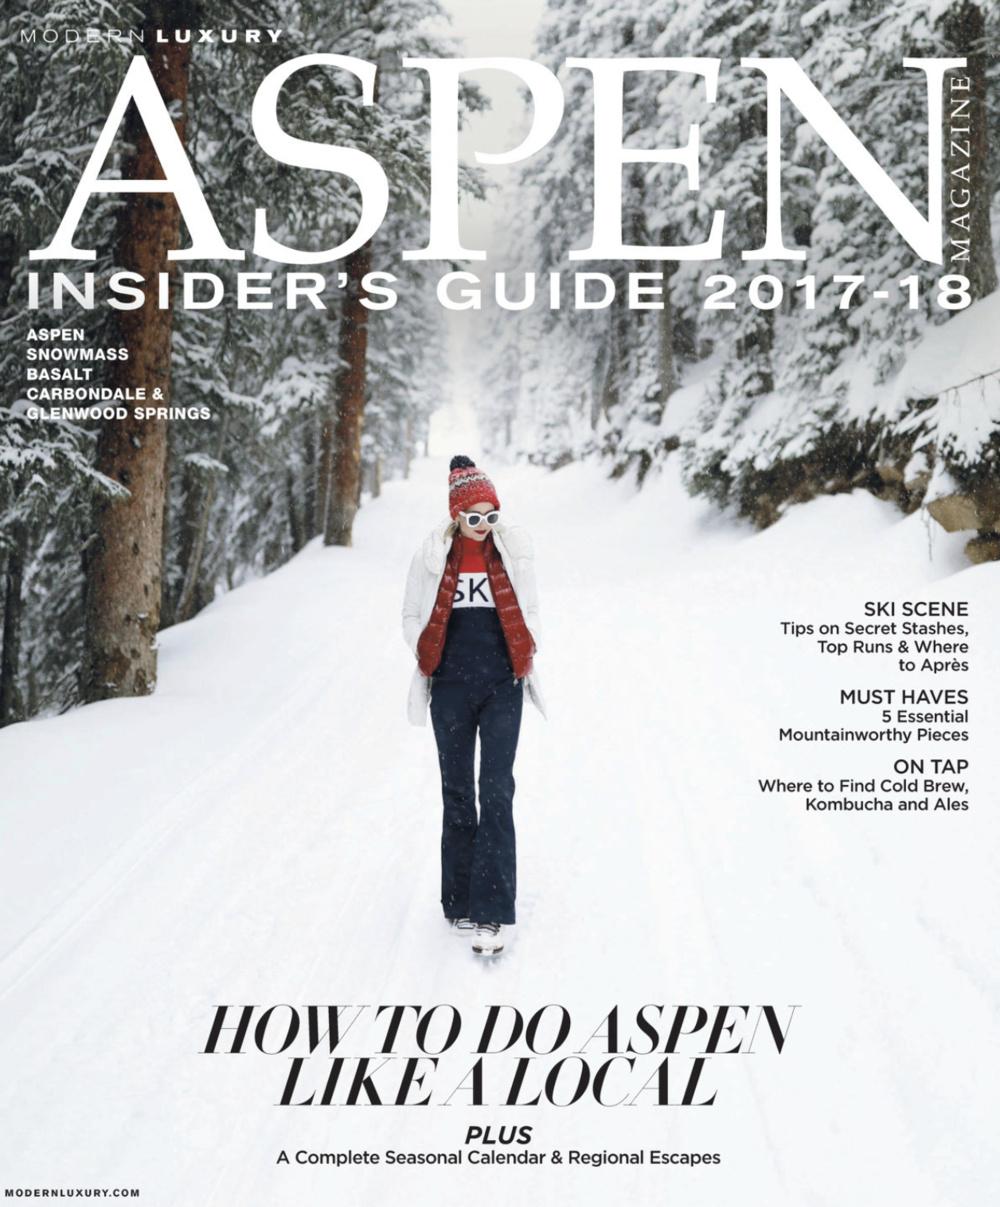 Freelance work: Aspen Magazine Insider's Guide 2017/18